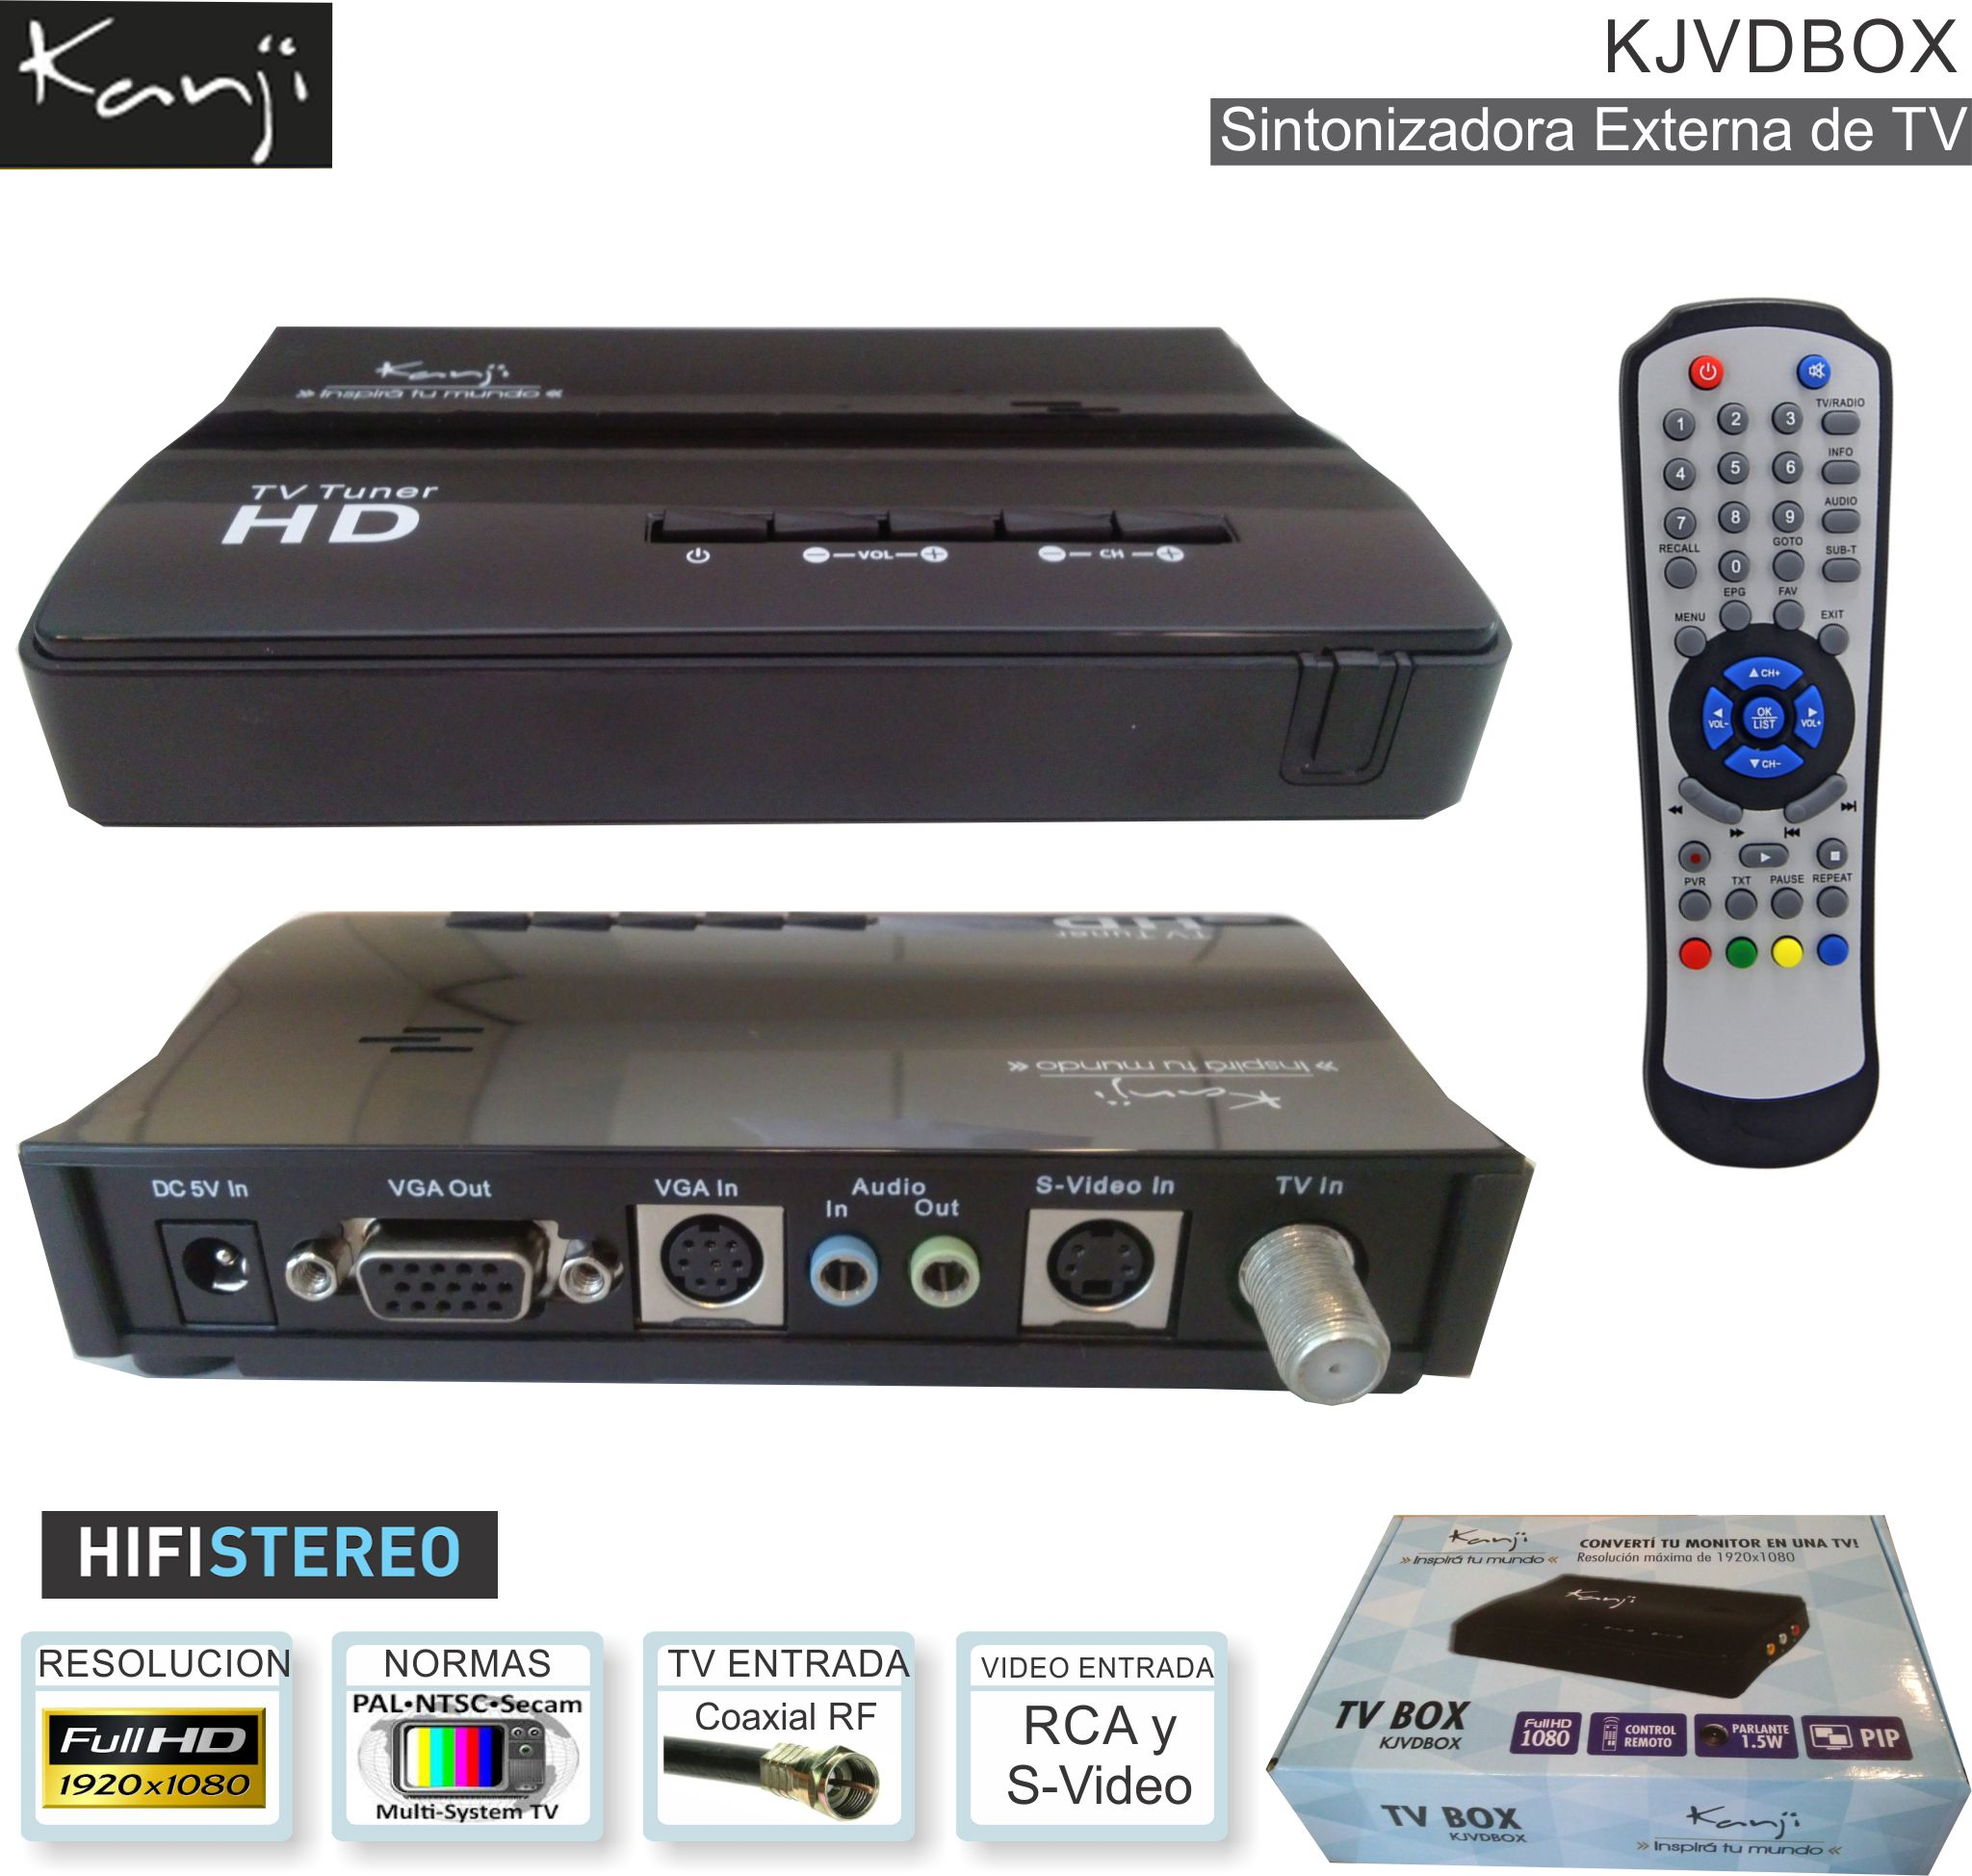 Sintonizadora TV Ext KANJI KJVDBOX